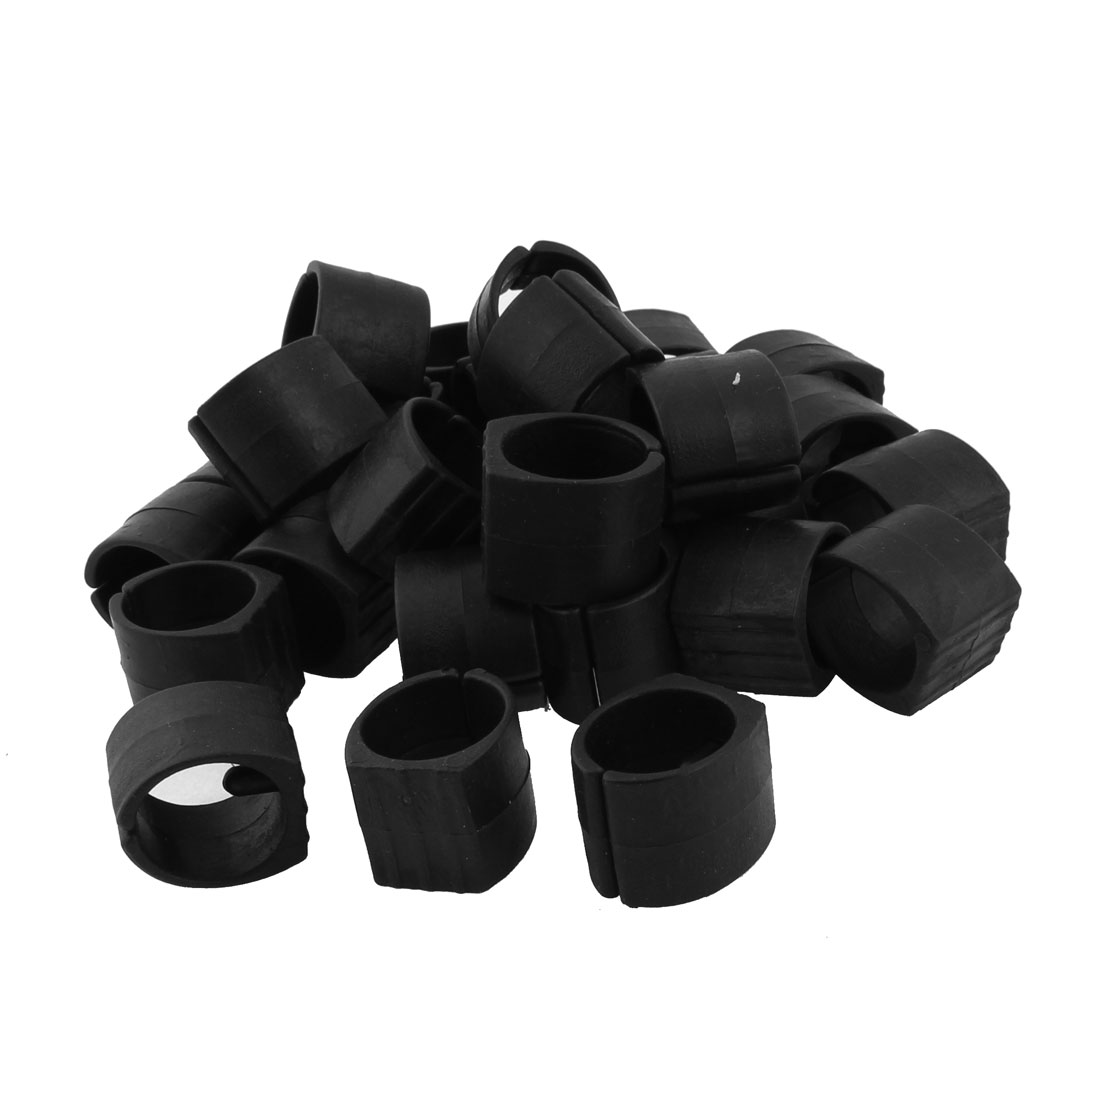 Home Furniture Chair Pipe Plastic Foot Clamp Pads U-Shape Caps Black 30pcs